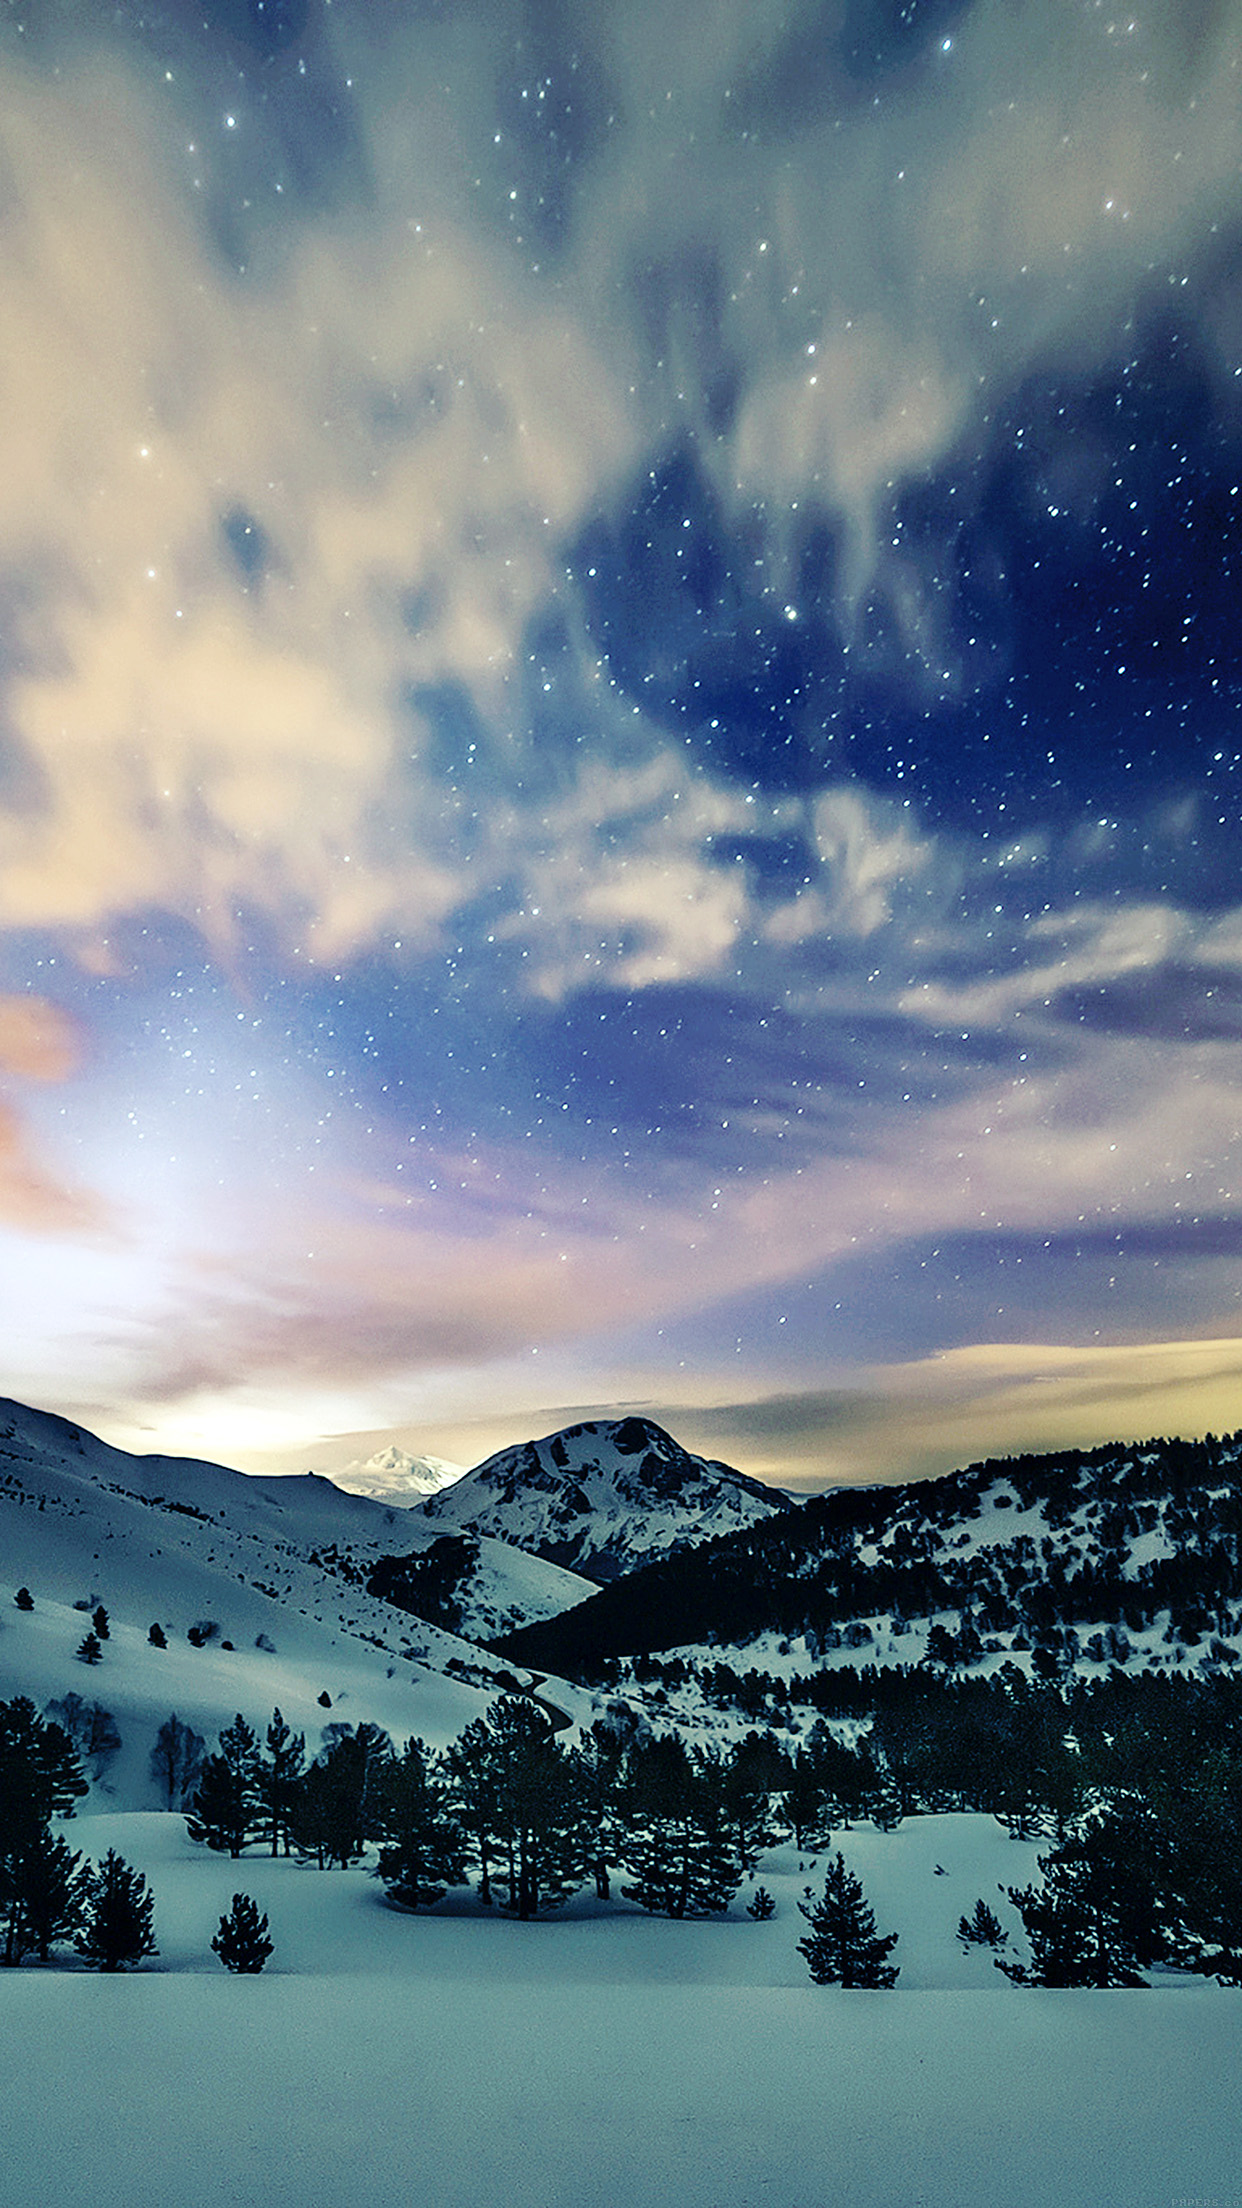 Hd Christmas Wallpaper Cute Mk79 Aurora Star Sky Snow Night Mountain Winter Nature